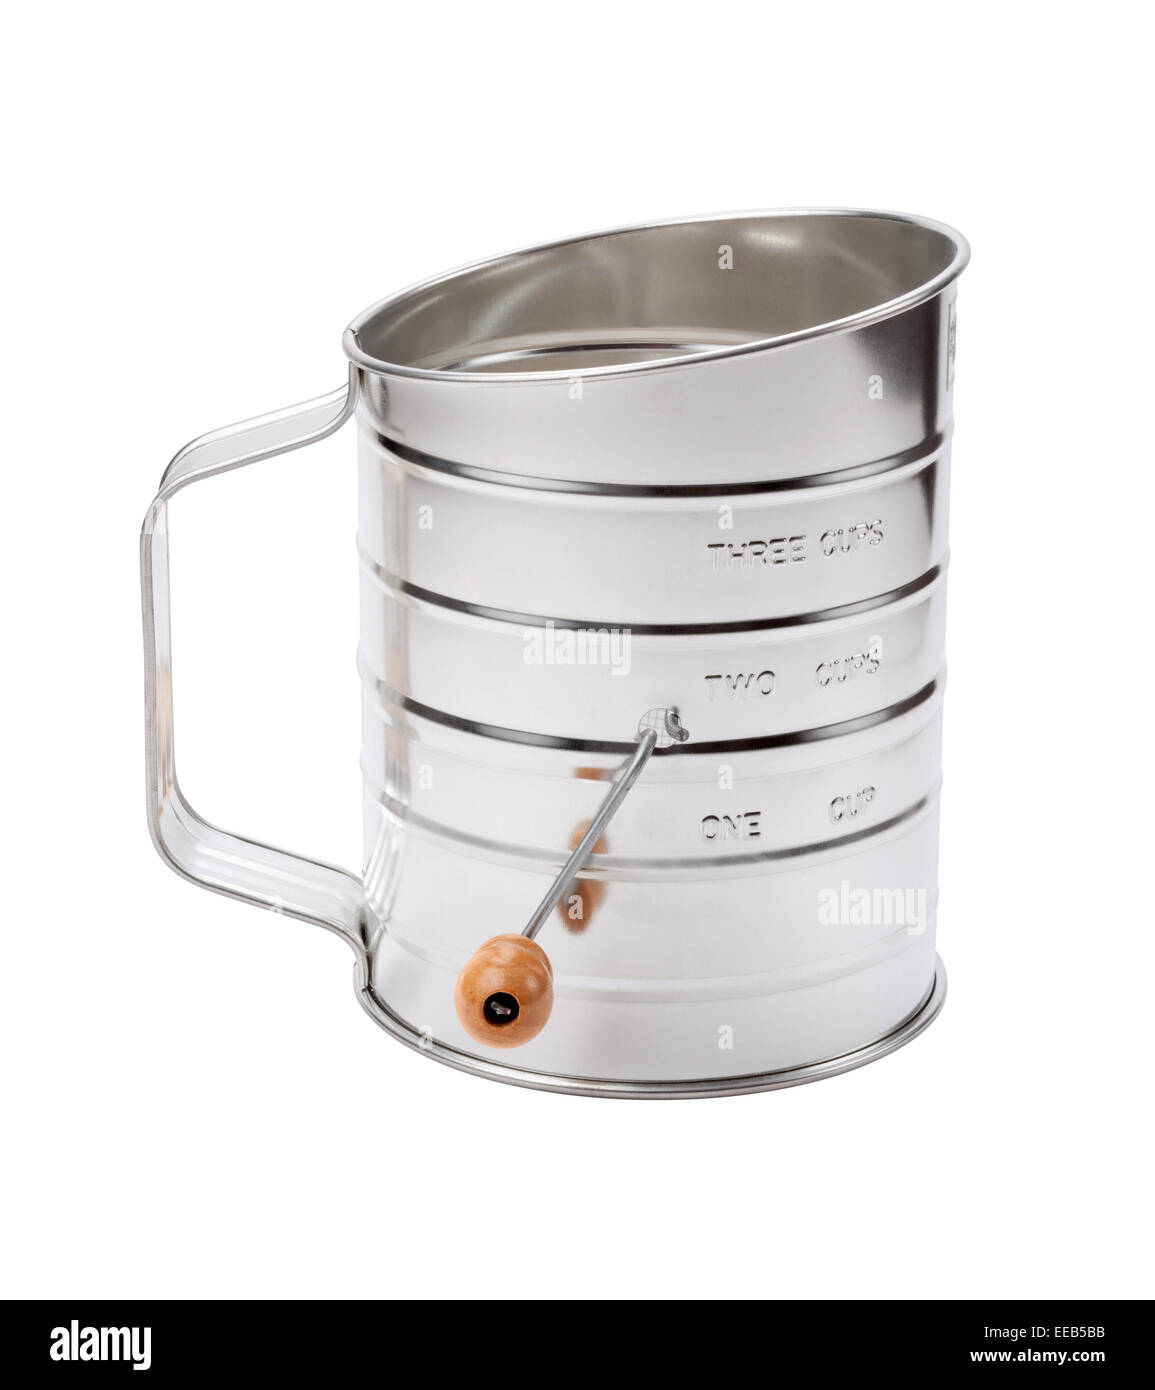 Stainless Sifter with a Crank - Stock Image